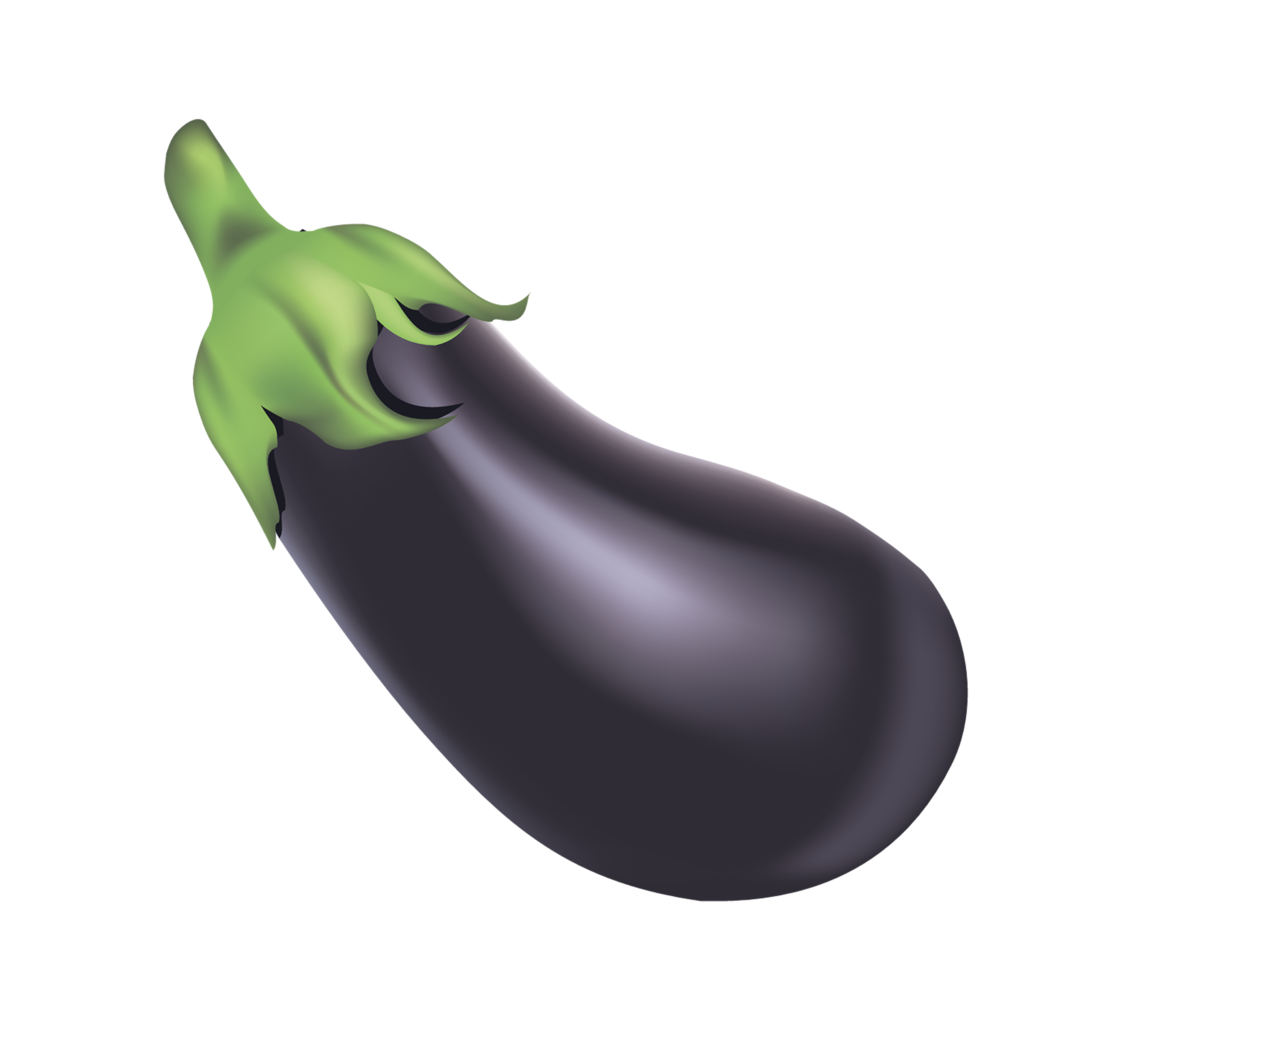 Eggplant PNG images free download - Eggplant PNG